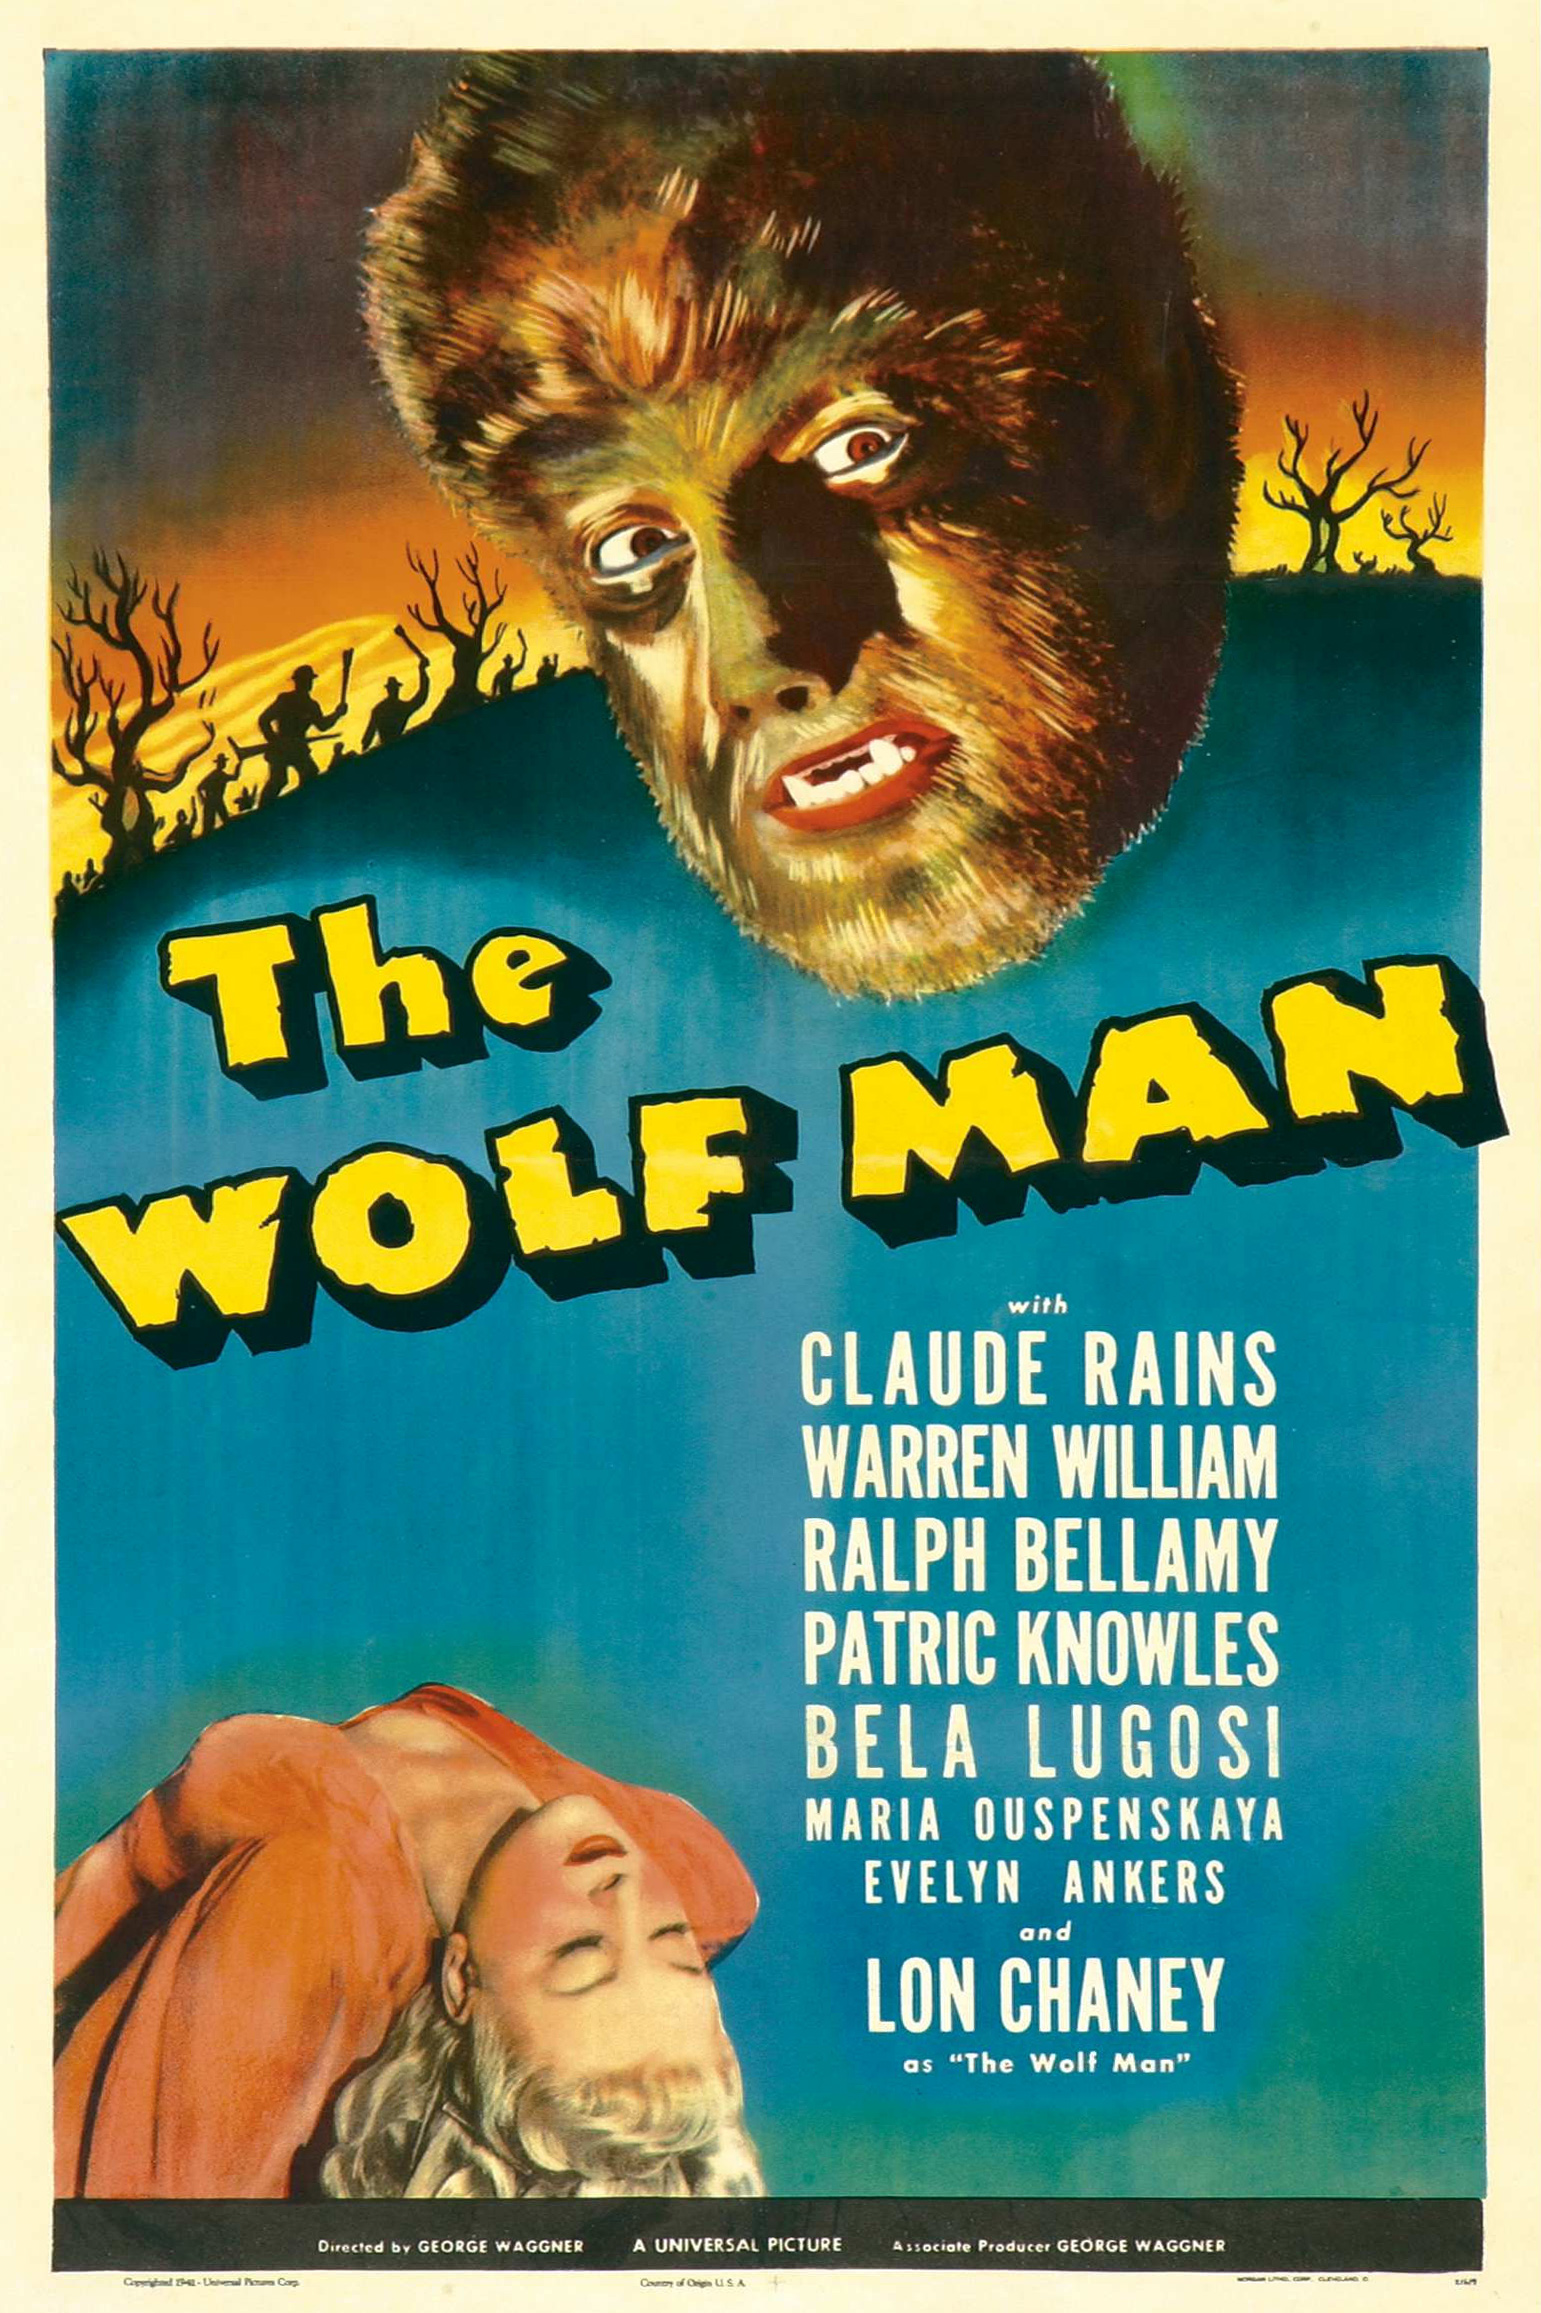 The Wolf Man (1941) - Directed by: George WaggnerStarring: Lon Chaney Jr., Claude Rains, Evelyn Ankers, Warren William, Bela LugosiRated: NR (Suggested PG for Some Scary Moments and Mild Violence)Running Time: 1 h 10 mTMM Score: 4 stars out of 5STRENGTHS: Moral Dilemma, Production Design, Old Hollywood Charm, PacingWEAKNESSES: Theatricality and Melodrama